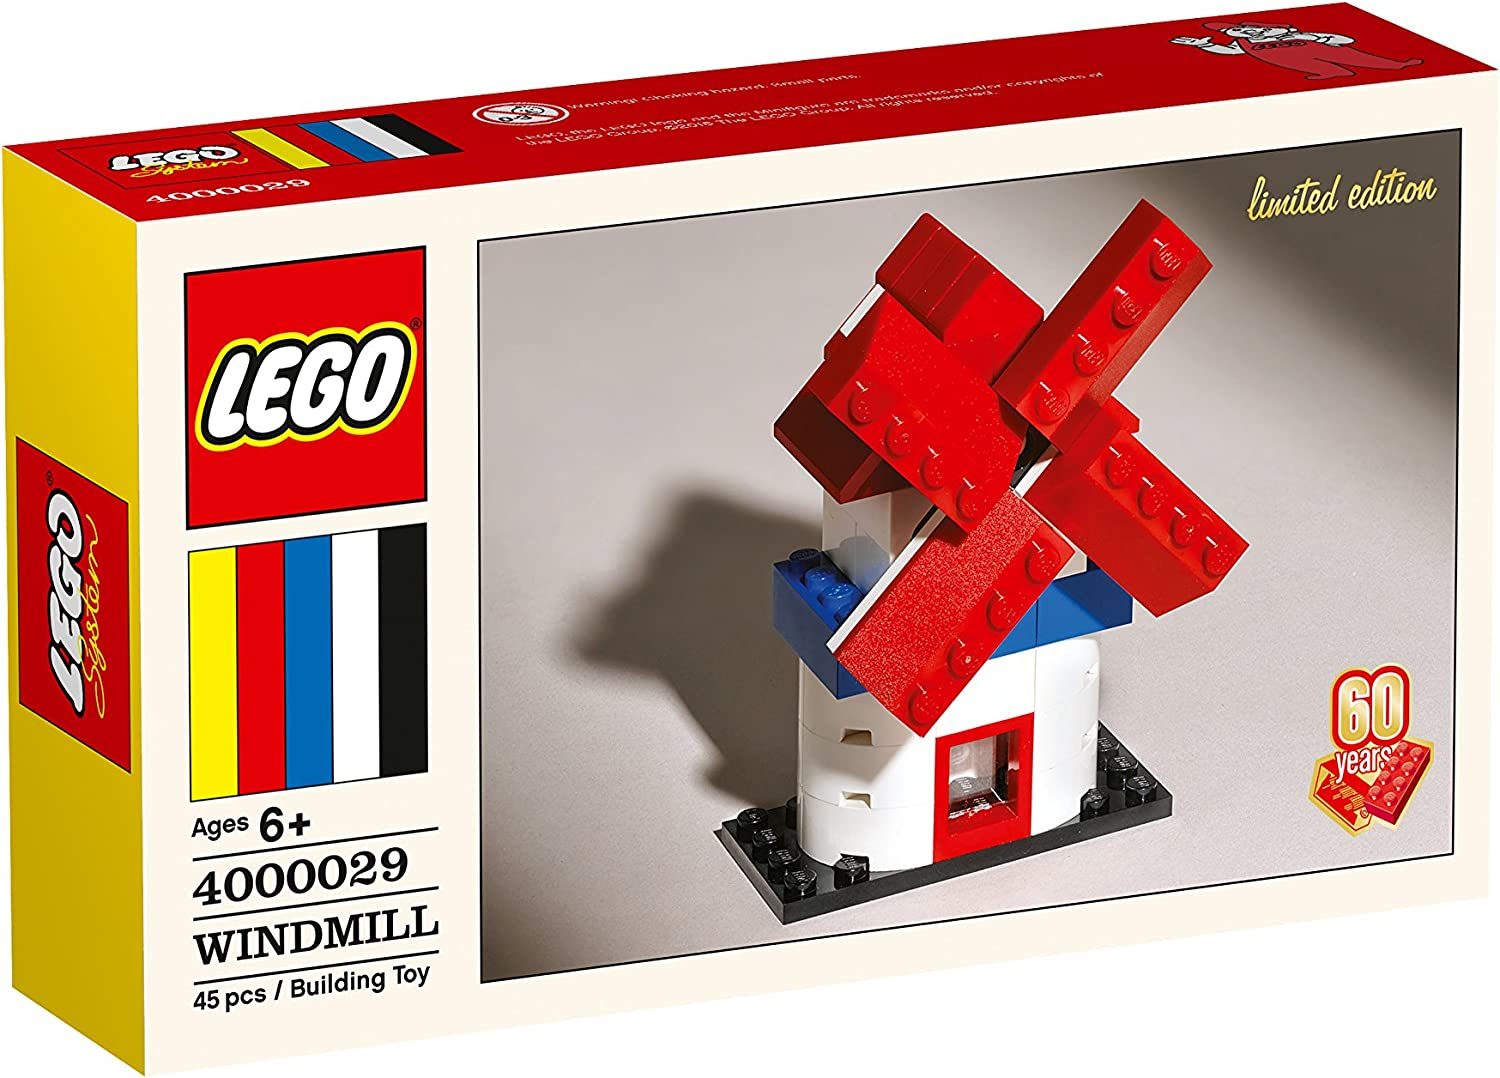 LEGO Classic 60th Anniversary Limited Edition Windmill 4000029